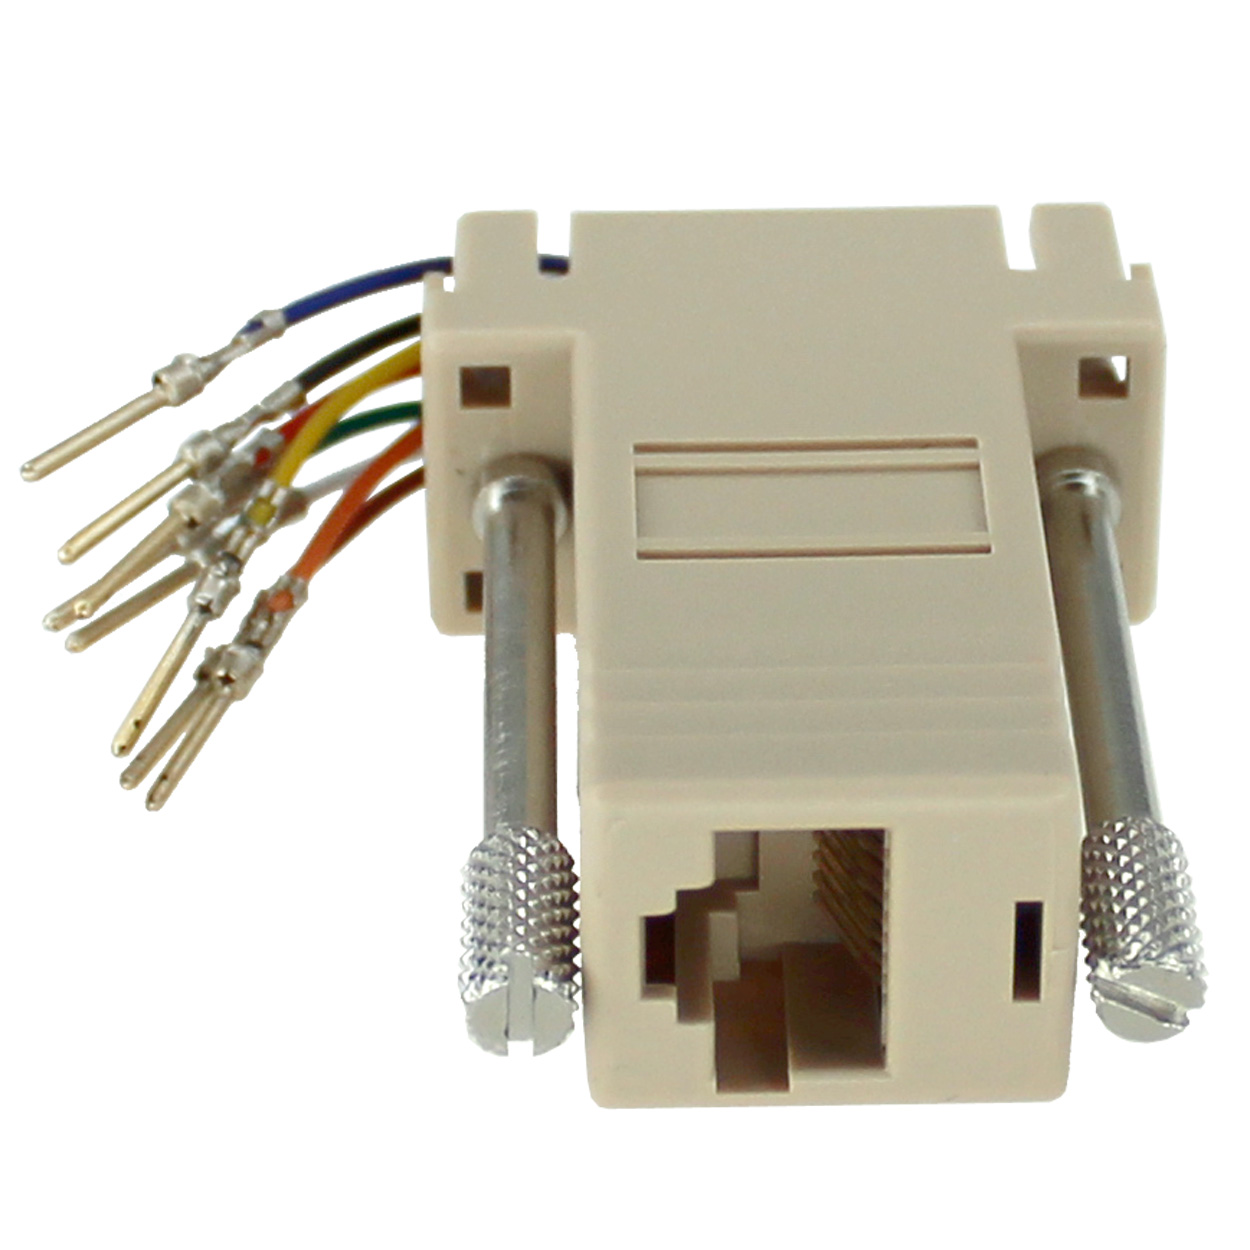 RJ45 to DB9 Male Modular Adapter - Beige - PI Manufacturing